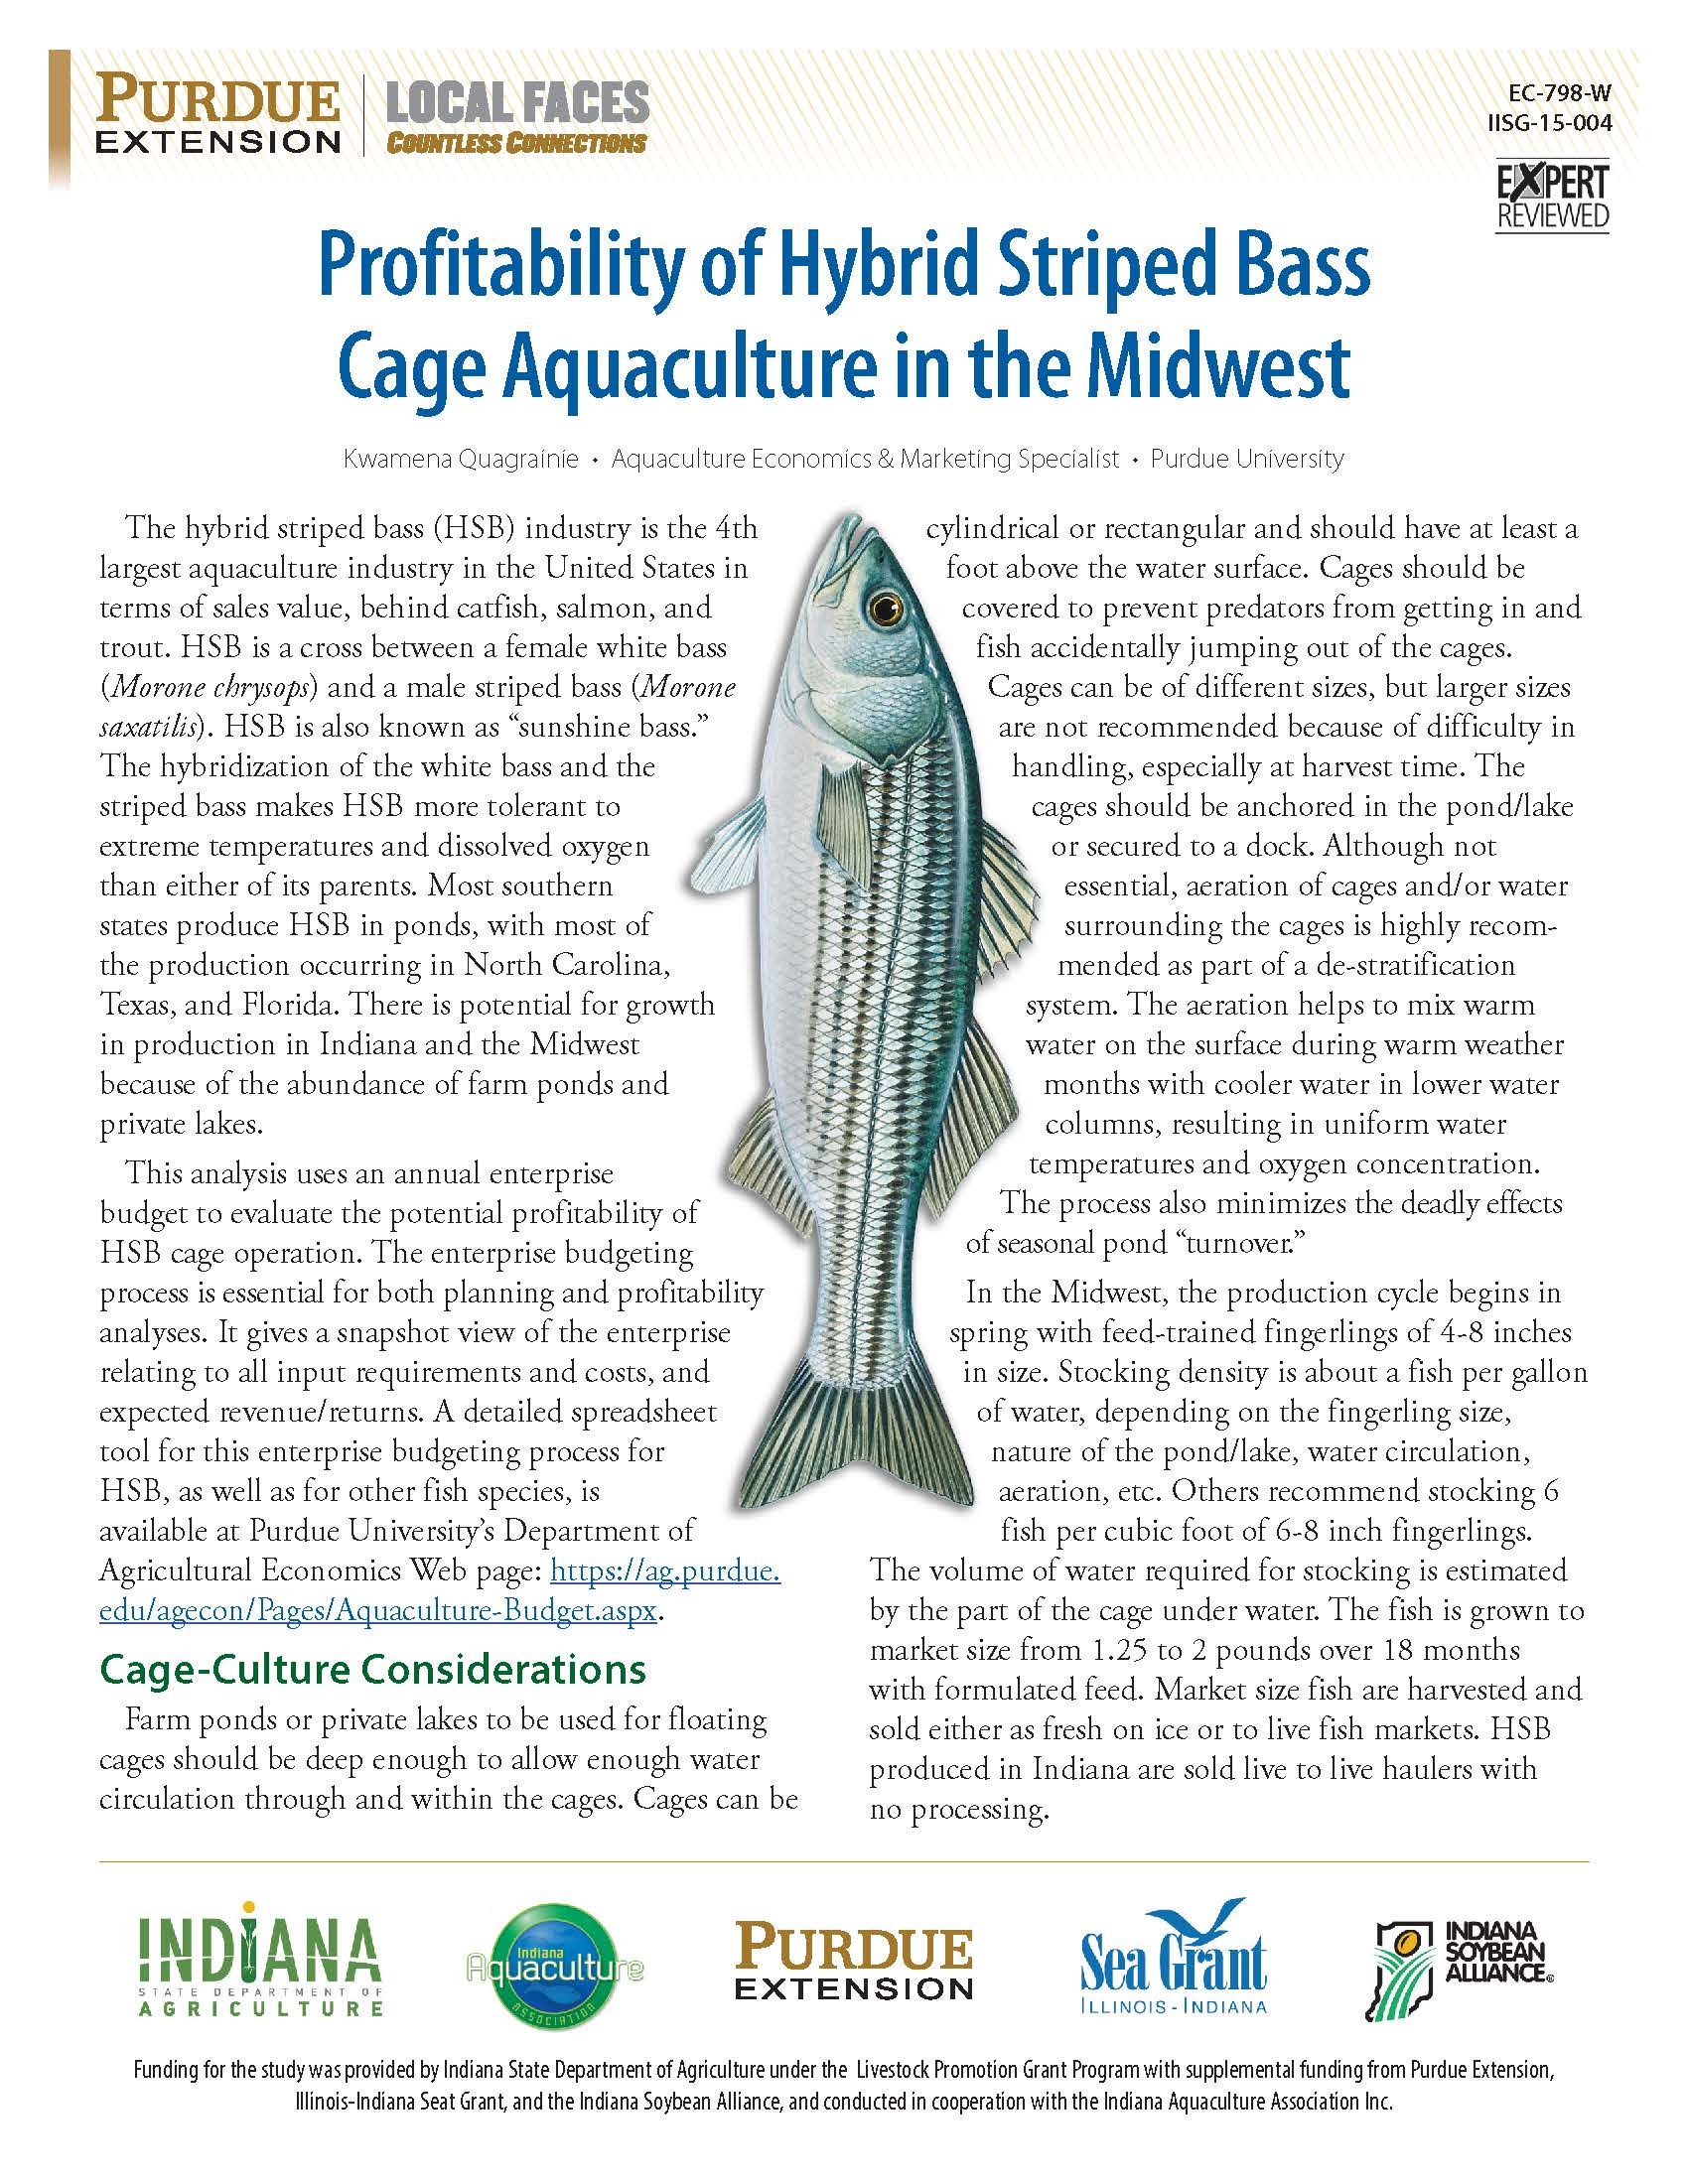 Profitability of Hybrid Striped Bass Cage Aquaculture in the Midwest Thumbnail